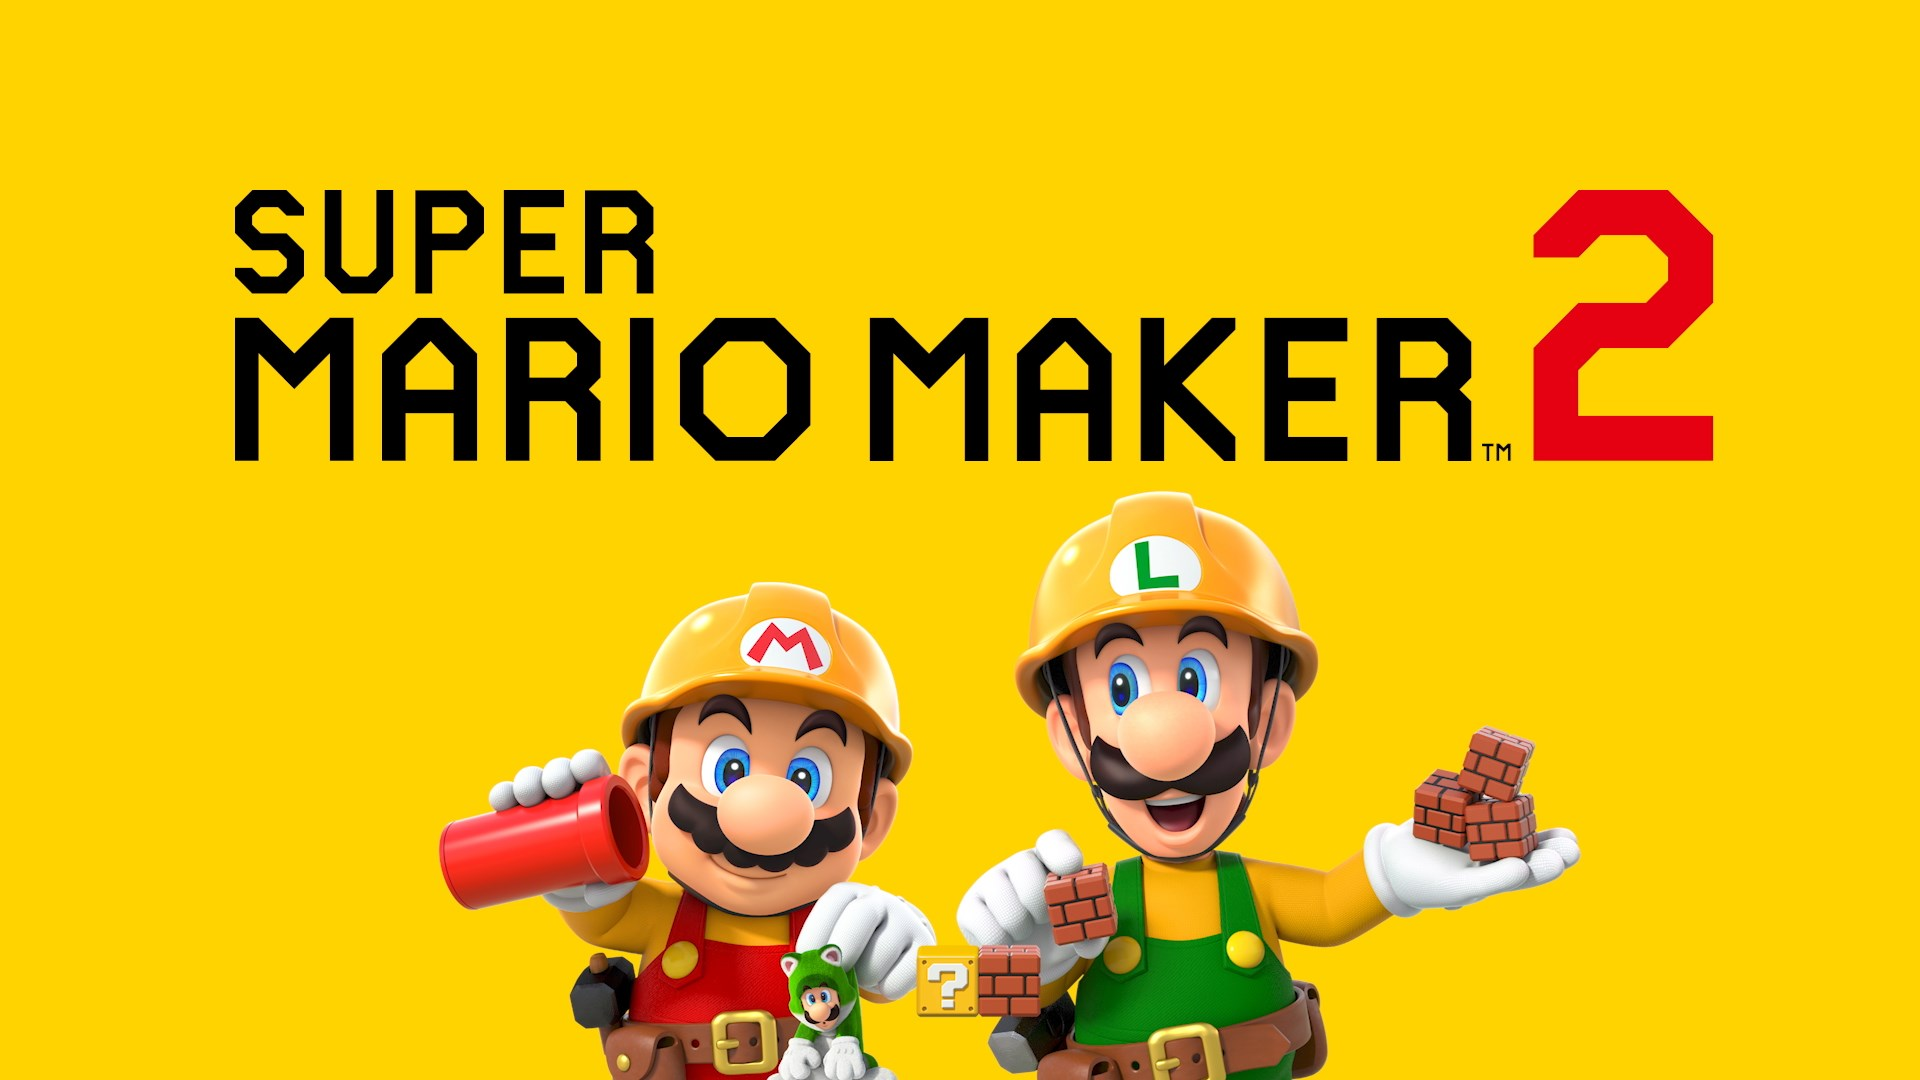 Switch_SuperMarioMaker2_ND0213_SCRN19_bmp_jpgcopy